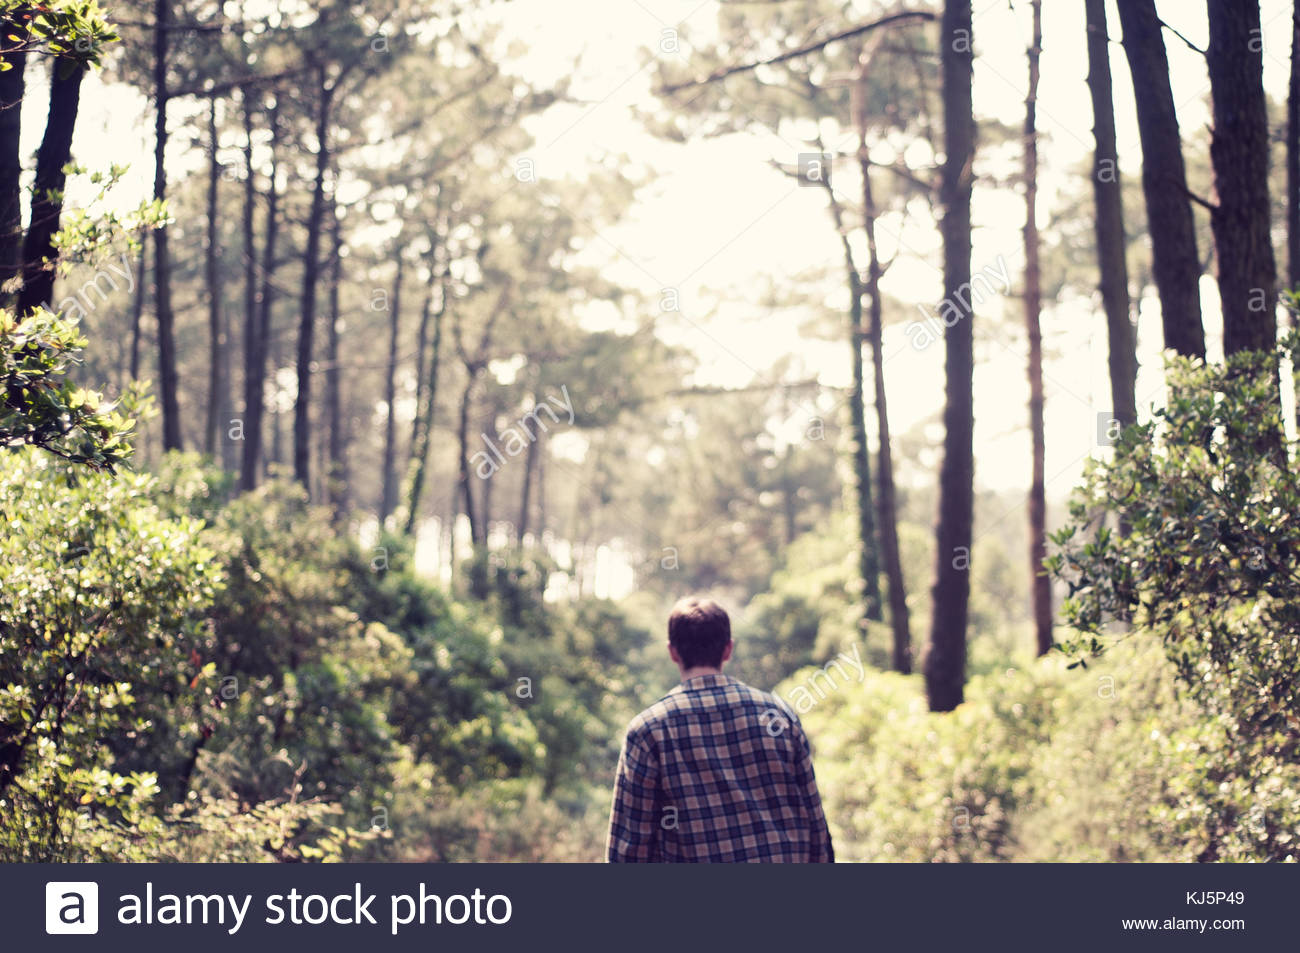 Man Walking in forest Photo Stock